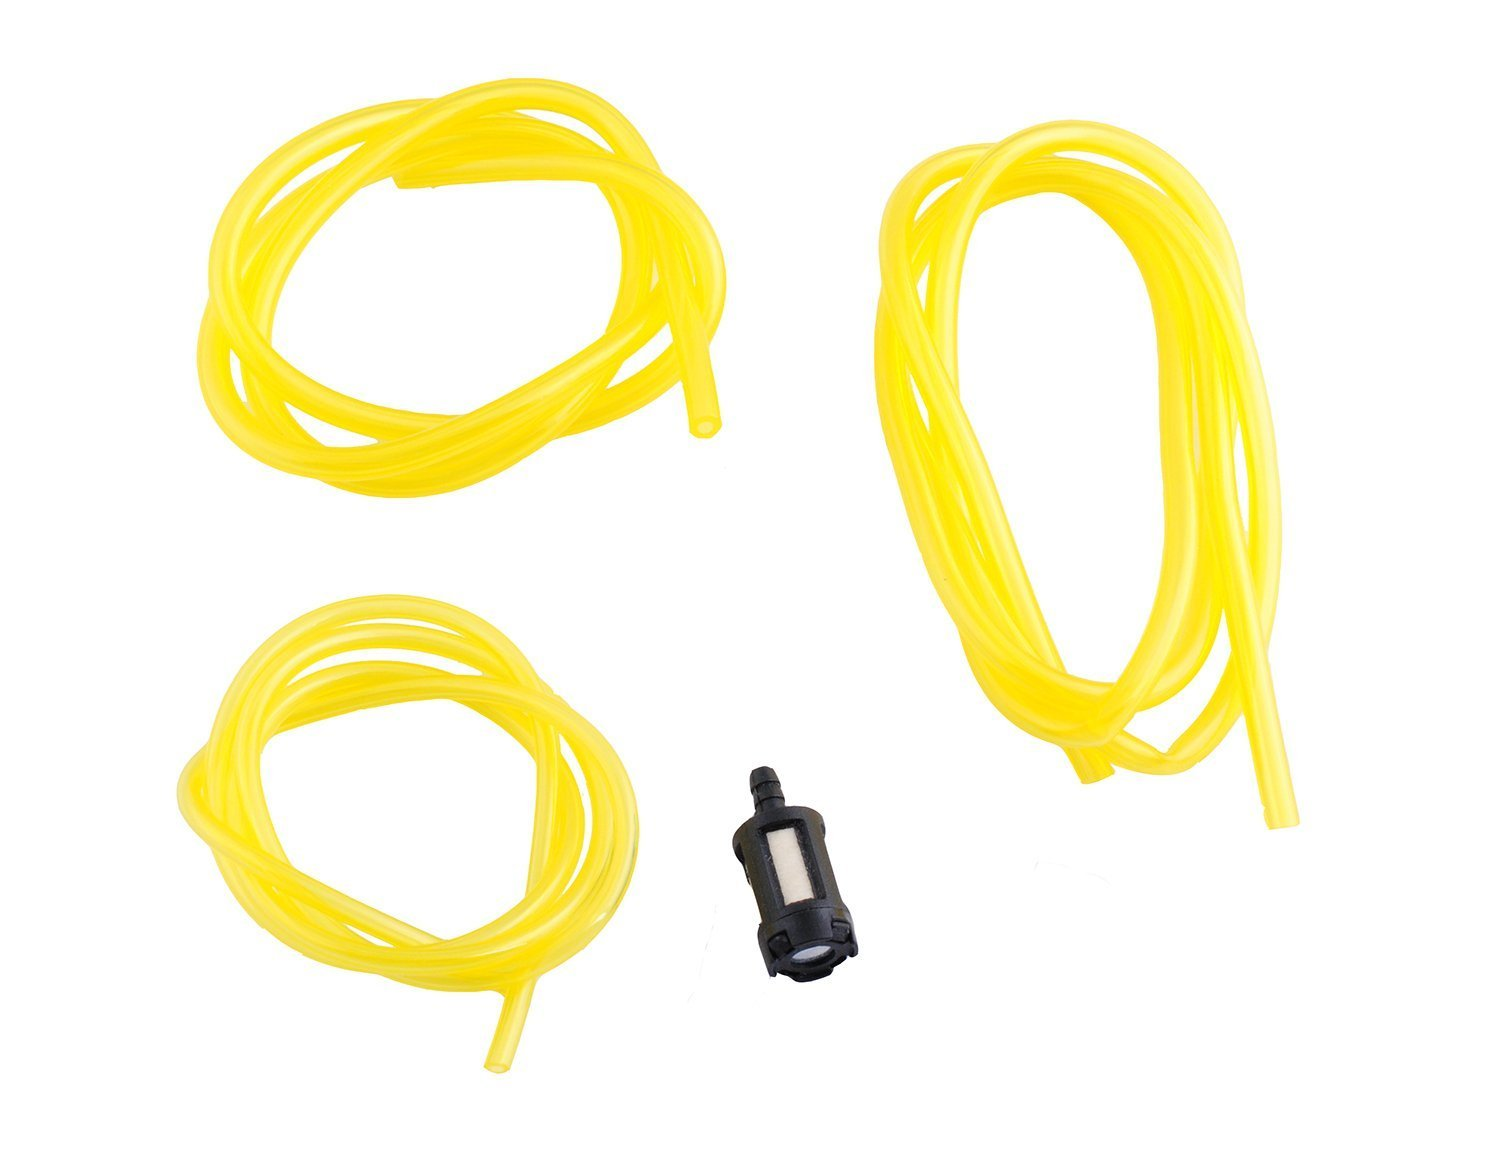 Amazon.com : 2 Cycle Fuel Line Repair Kit for Chainsaws Snow Blowers  Weedeaters and for All Makes and Models of 2 Cycle Equipment.